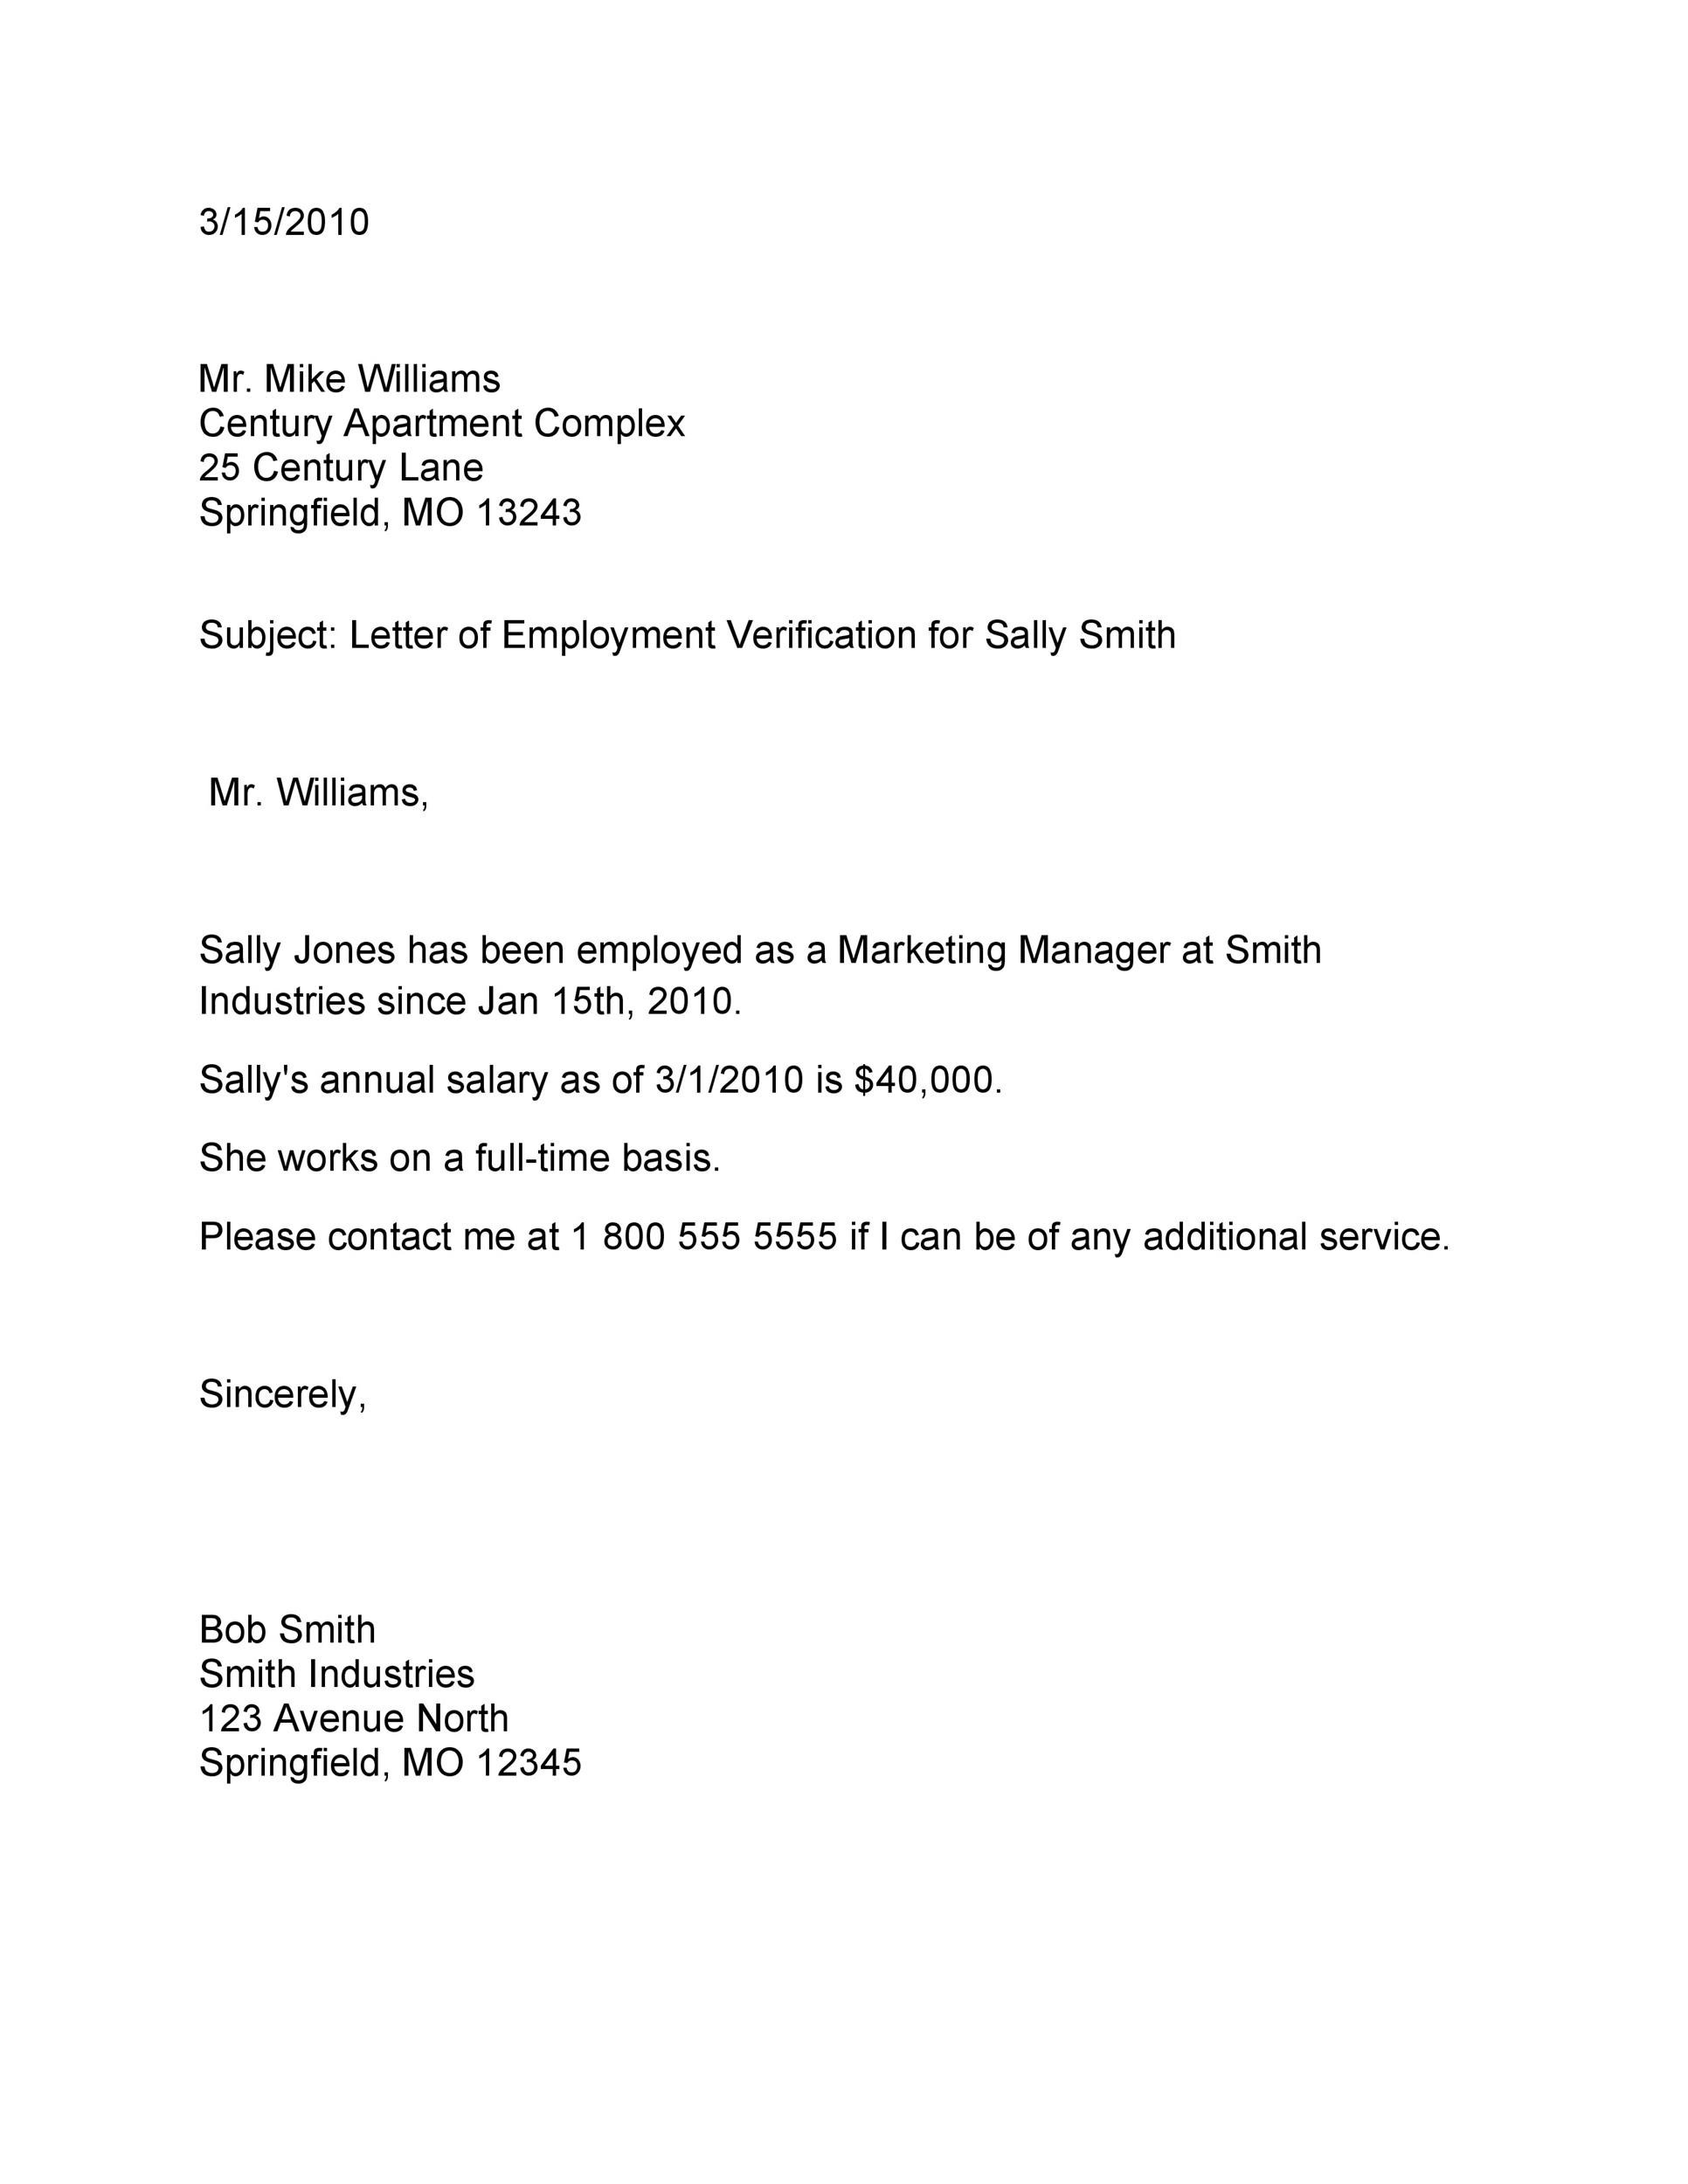 proof of employment letter template 05 - Employment Proof Letter